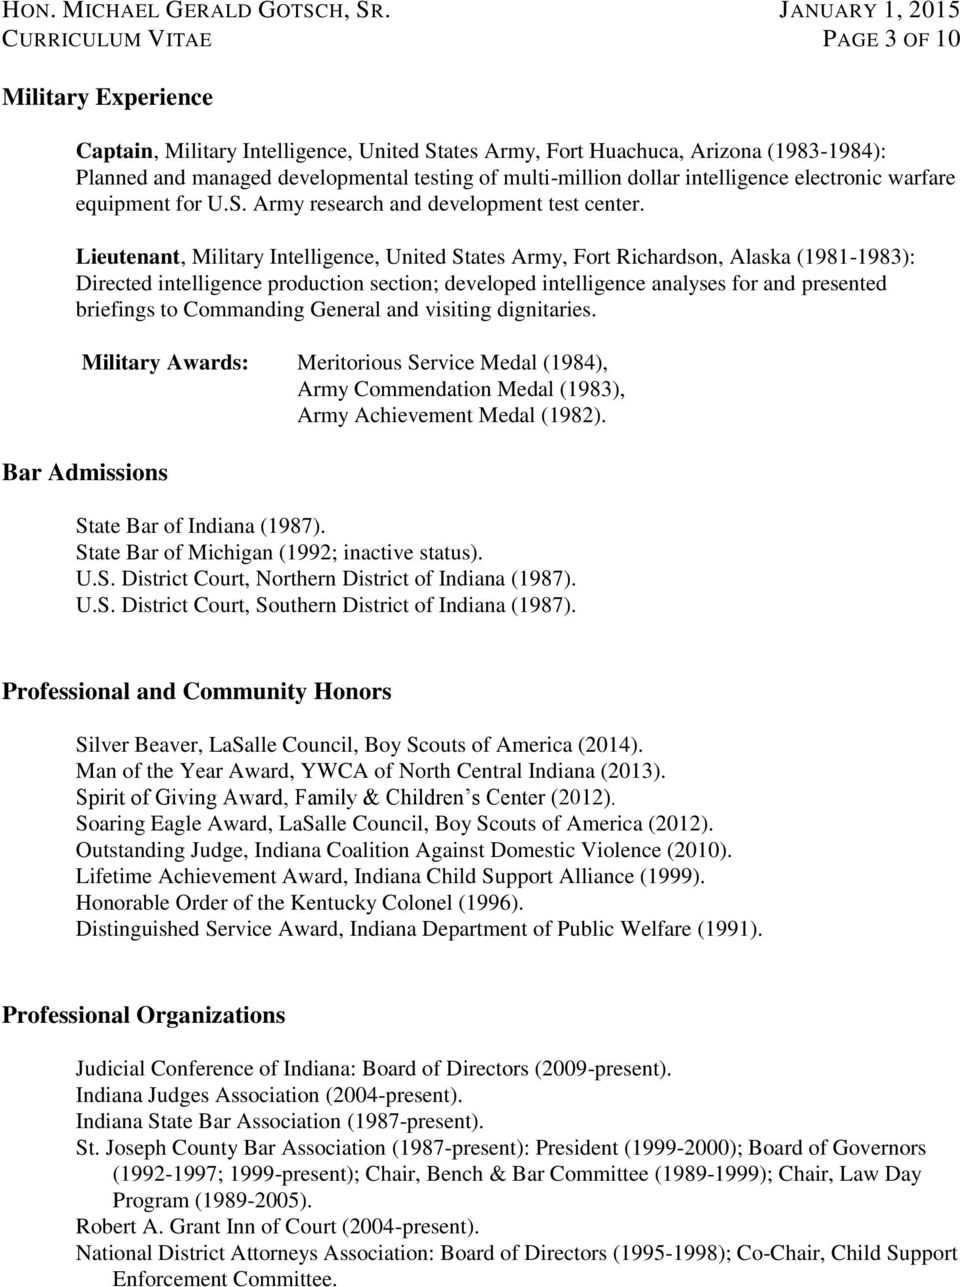 Lieutenant, Military Intelligence, United States Army, Fort Richardson, Alaska (1981-1983): Directed intelligence production section; developed intelligence analyses for and presented briefings to